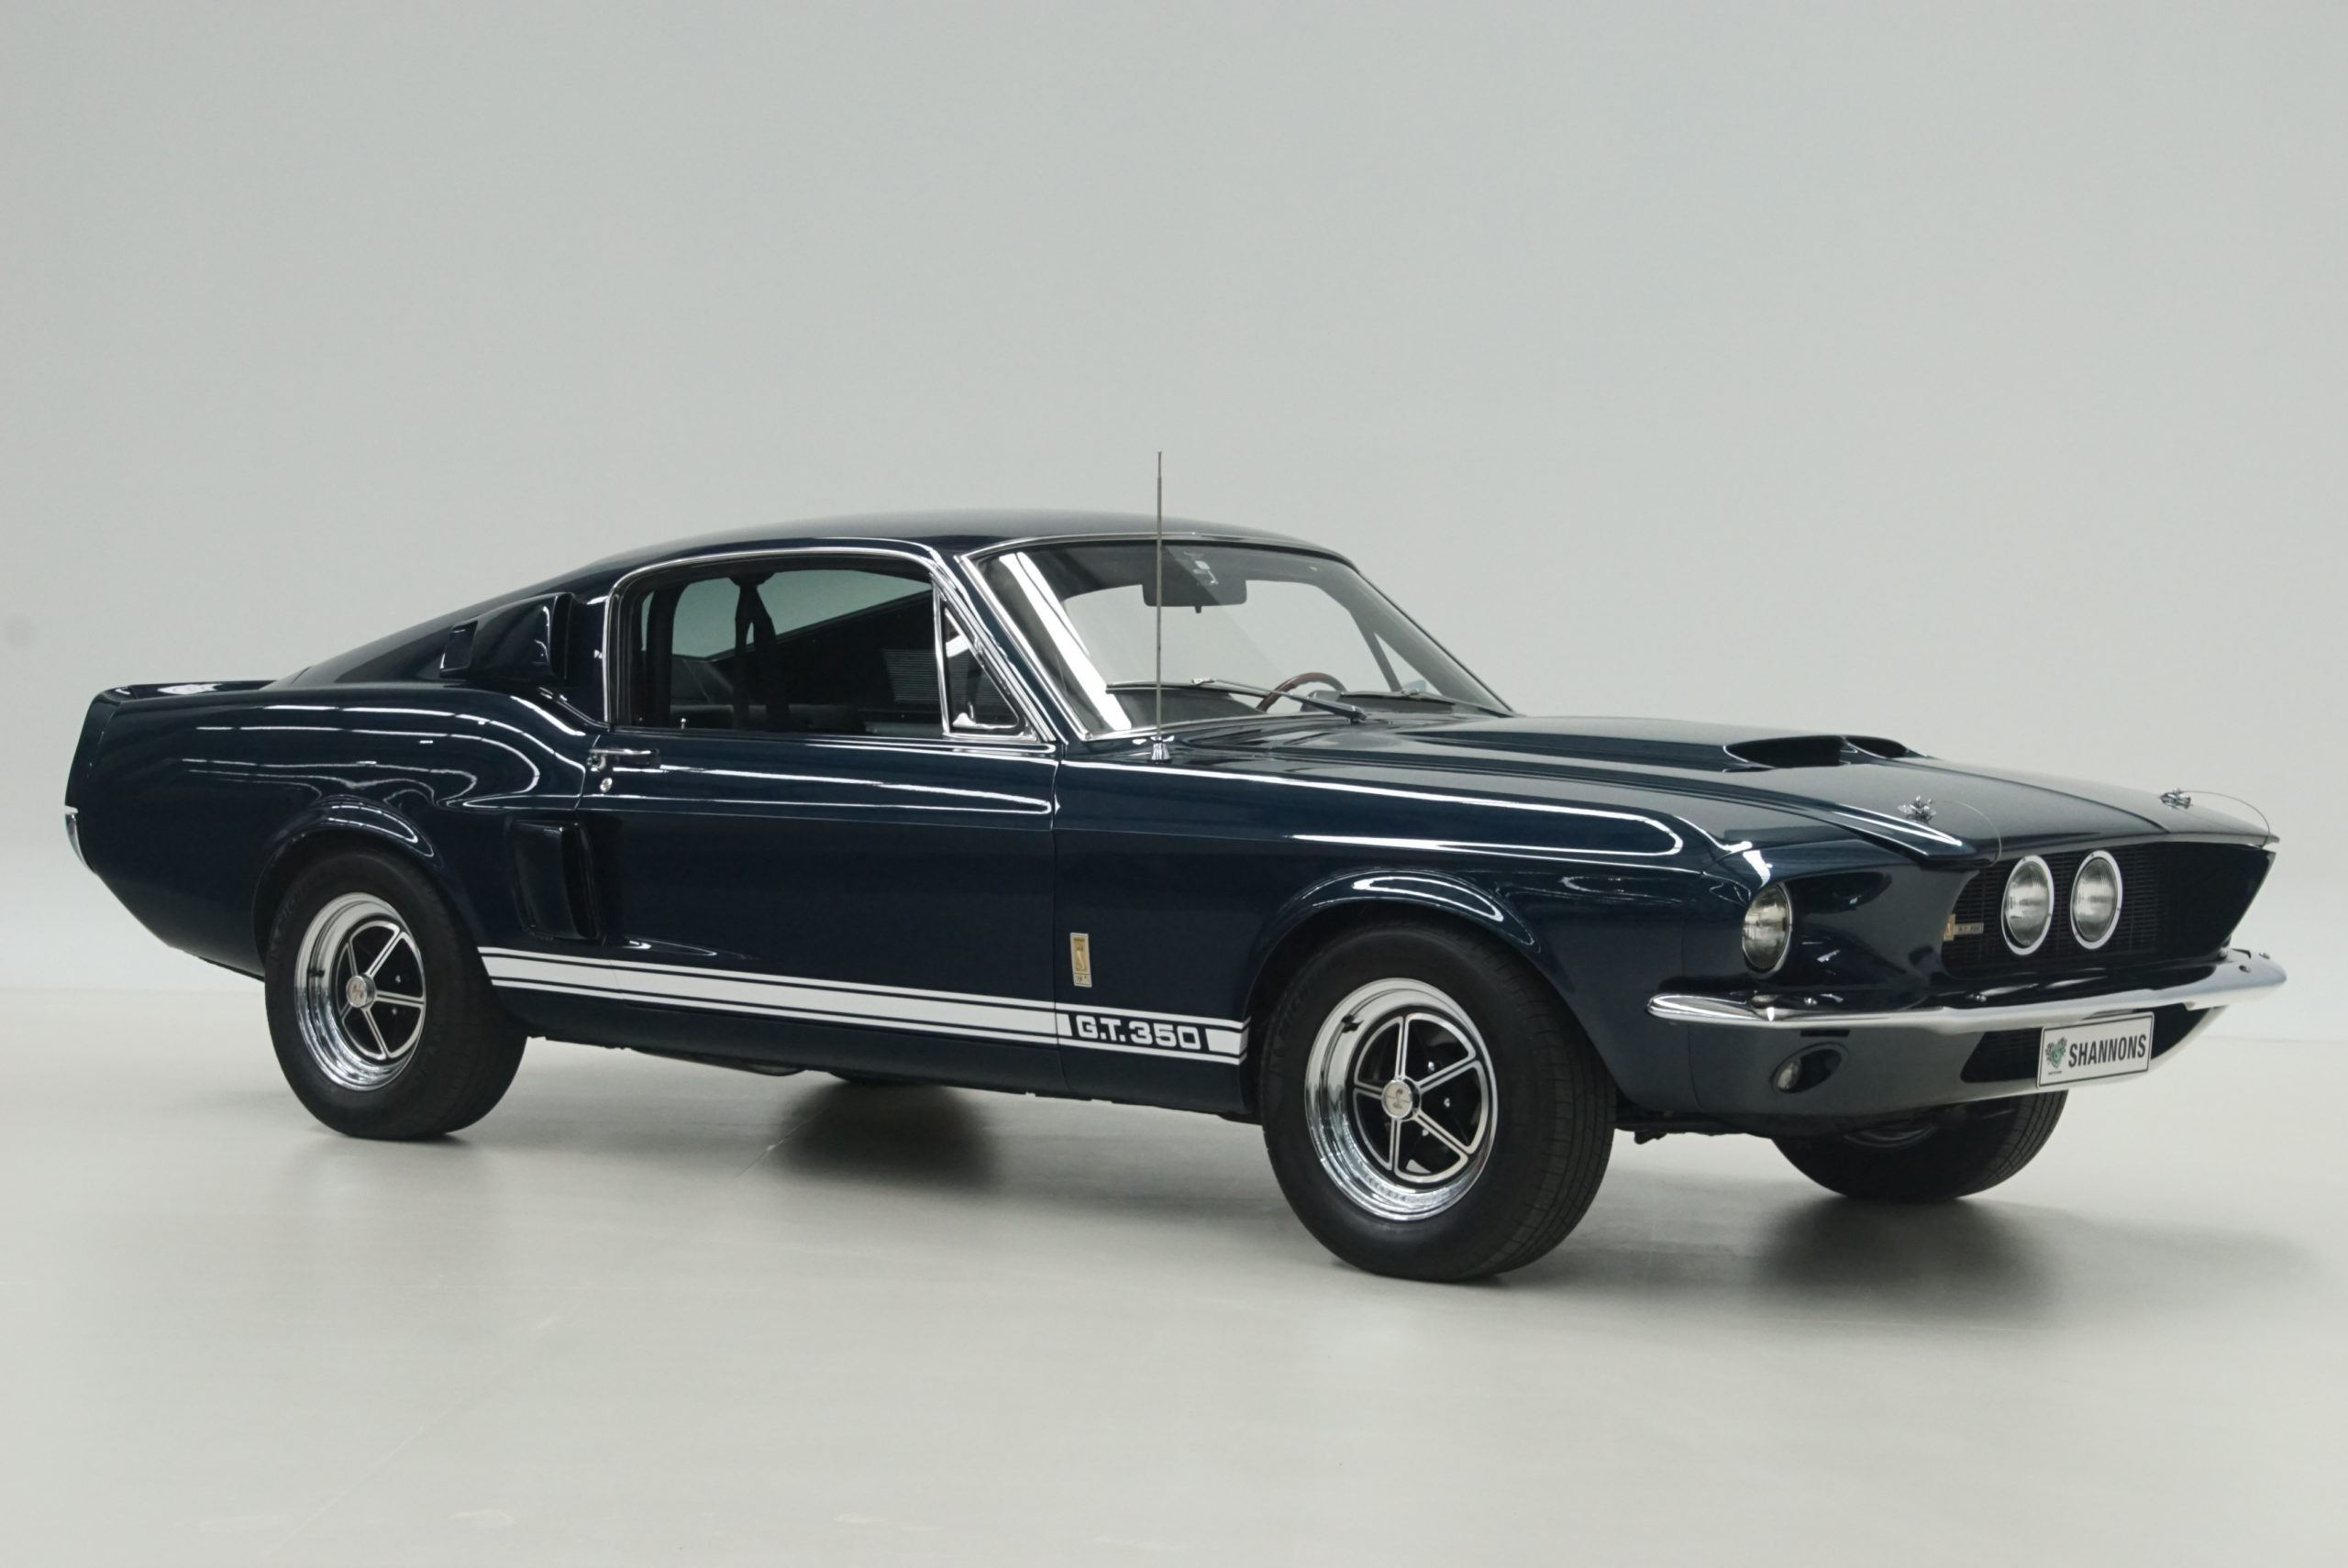 1967 Shelby Mustang GT350 Fastback - Résultats Shannons Auctions avril 2021.